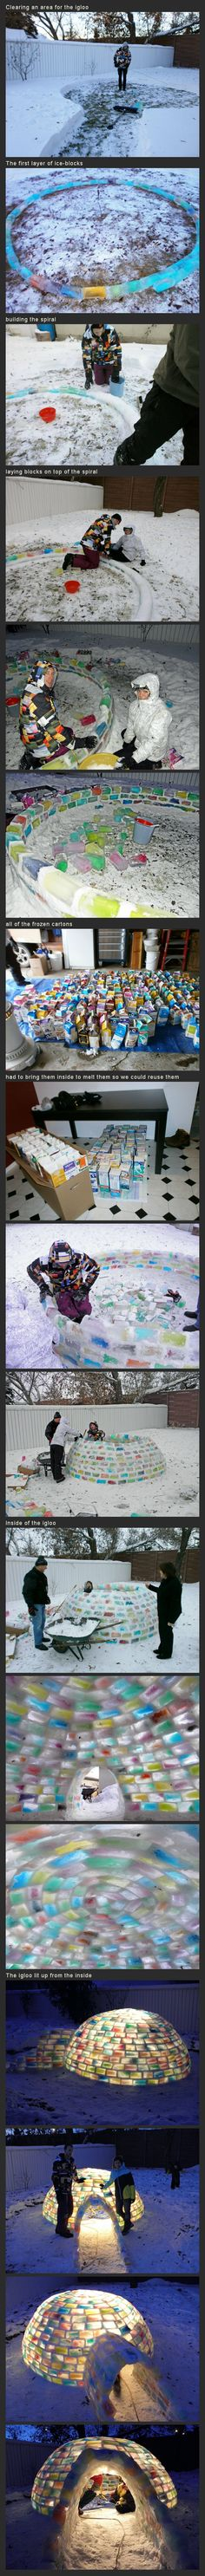 Building The Rainbow Igloo built by Kathleen Starrie and Daniel Gray